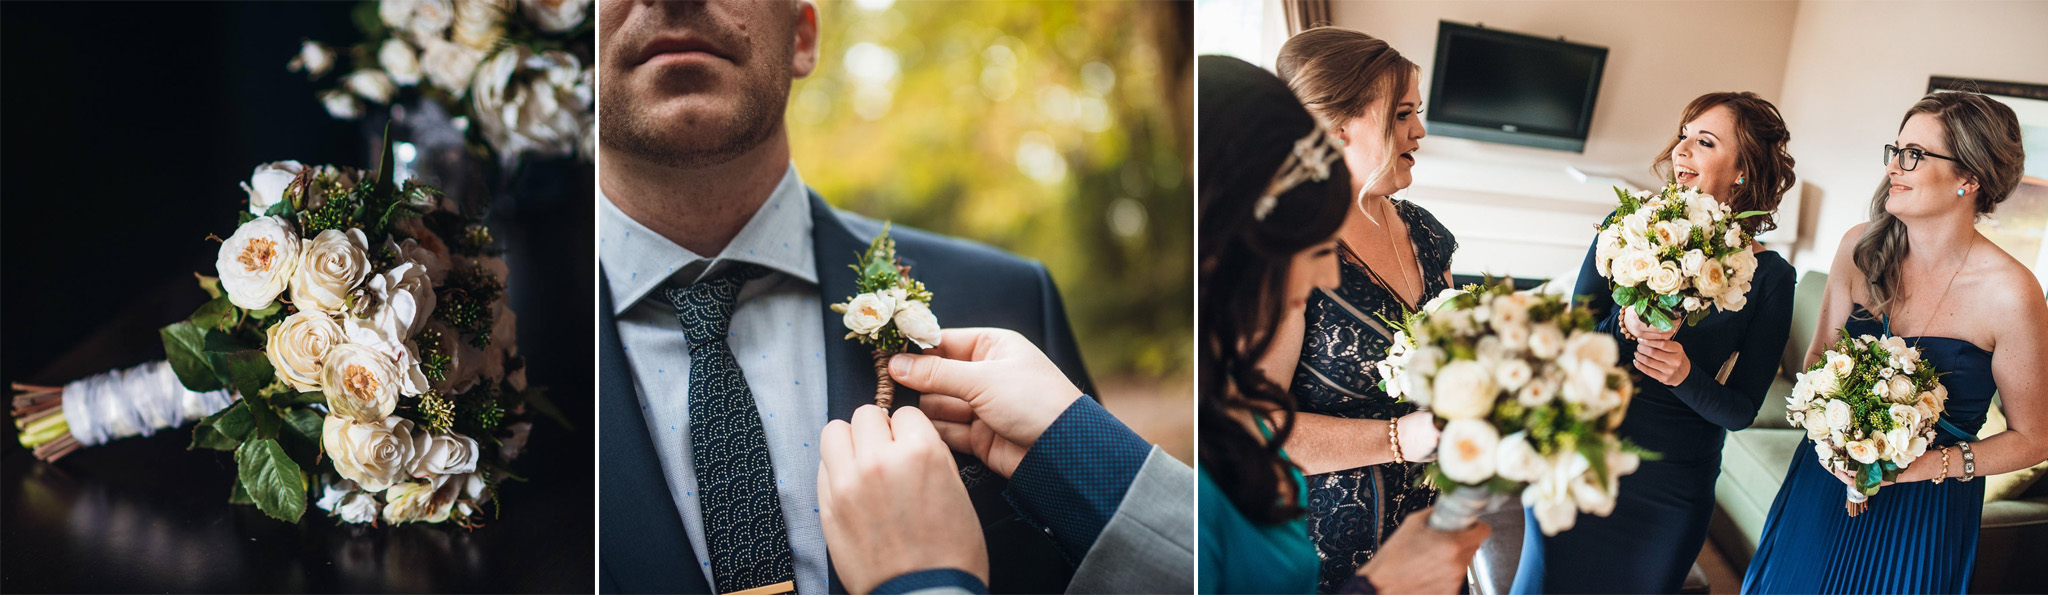 Photos by Hoffer Photography (from our own wedding!)